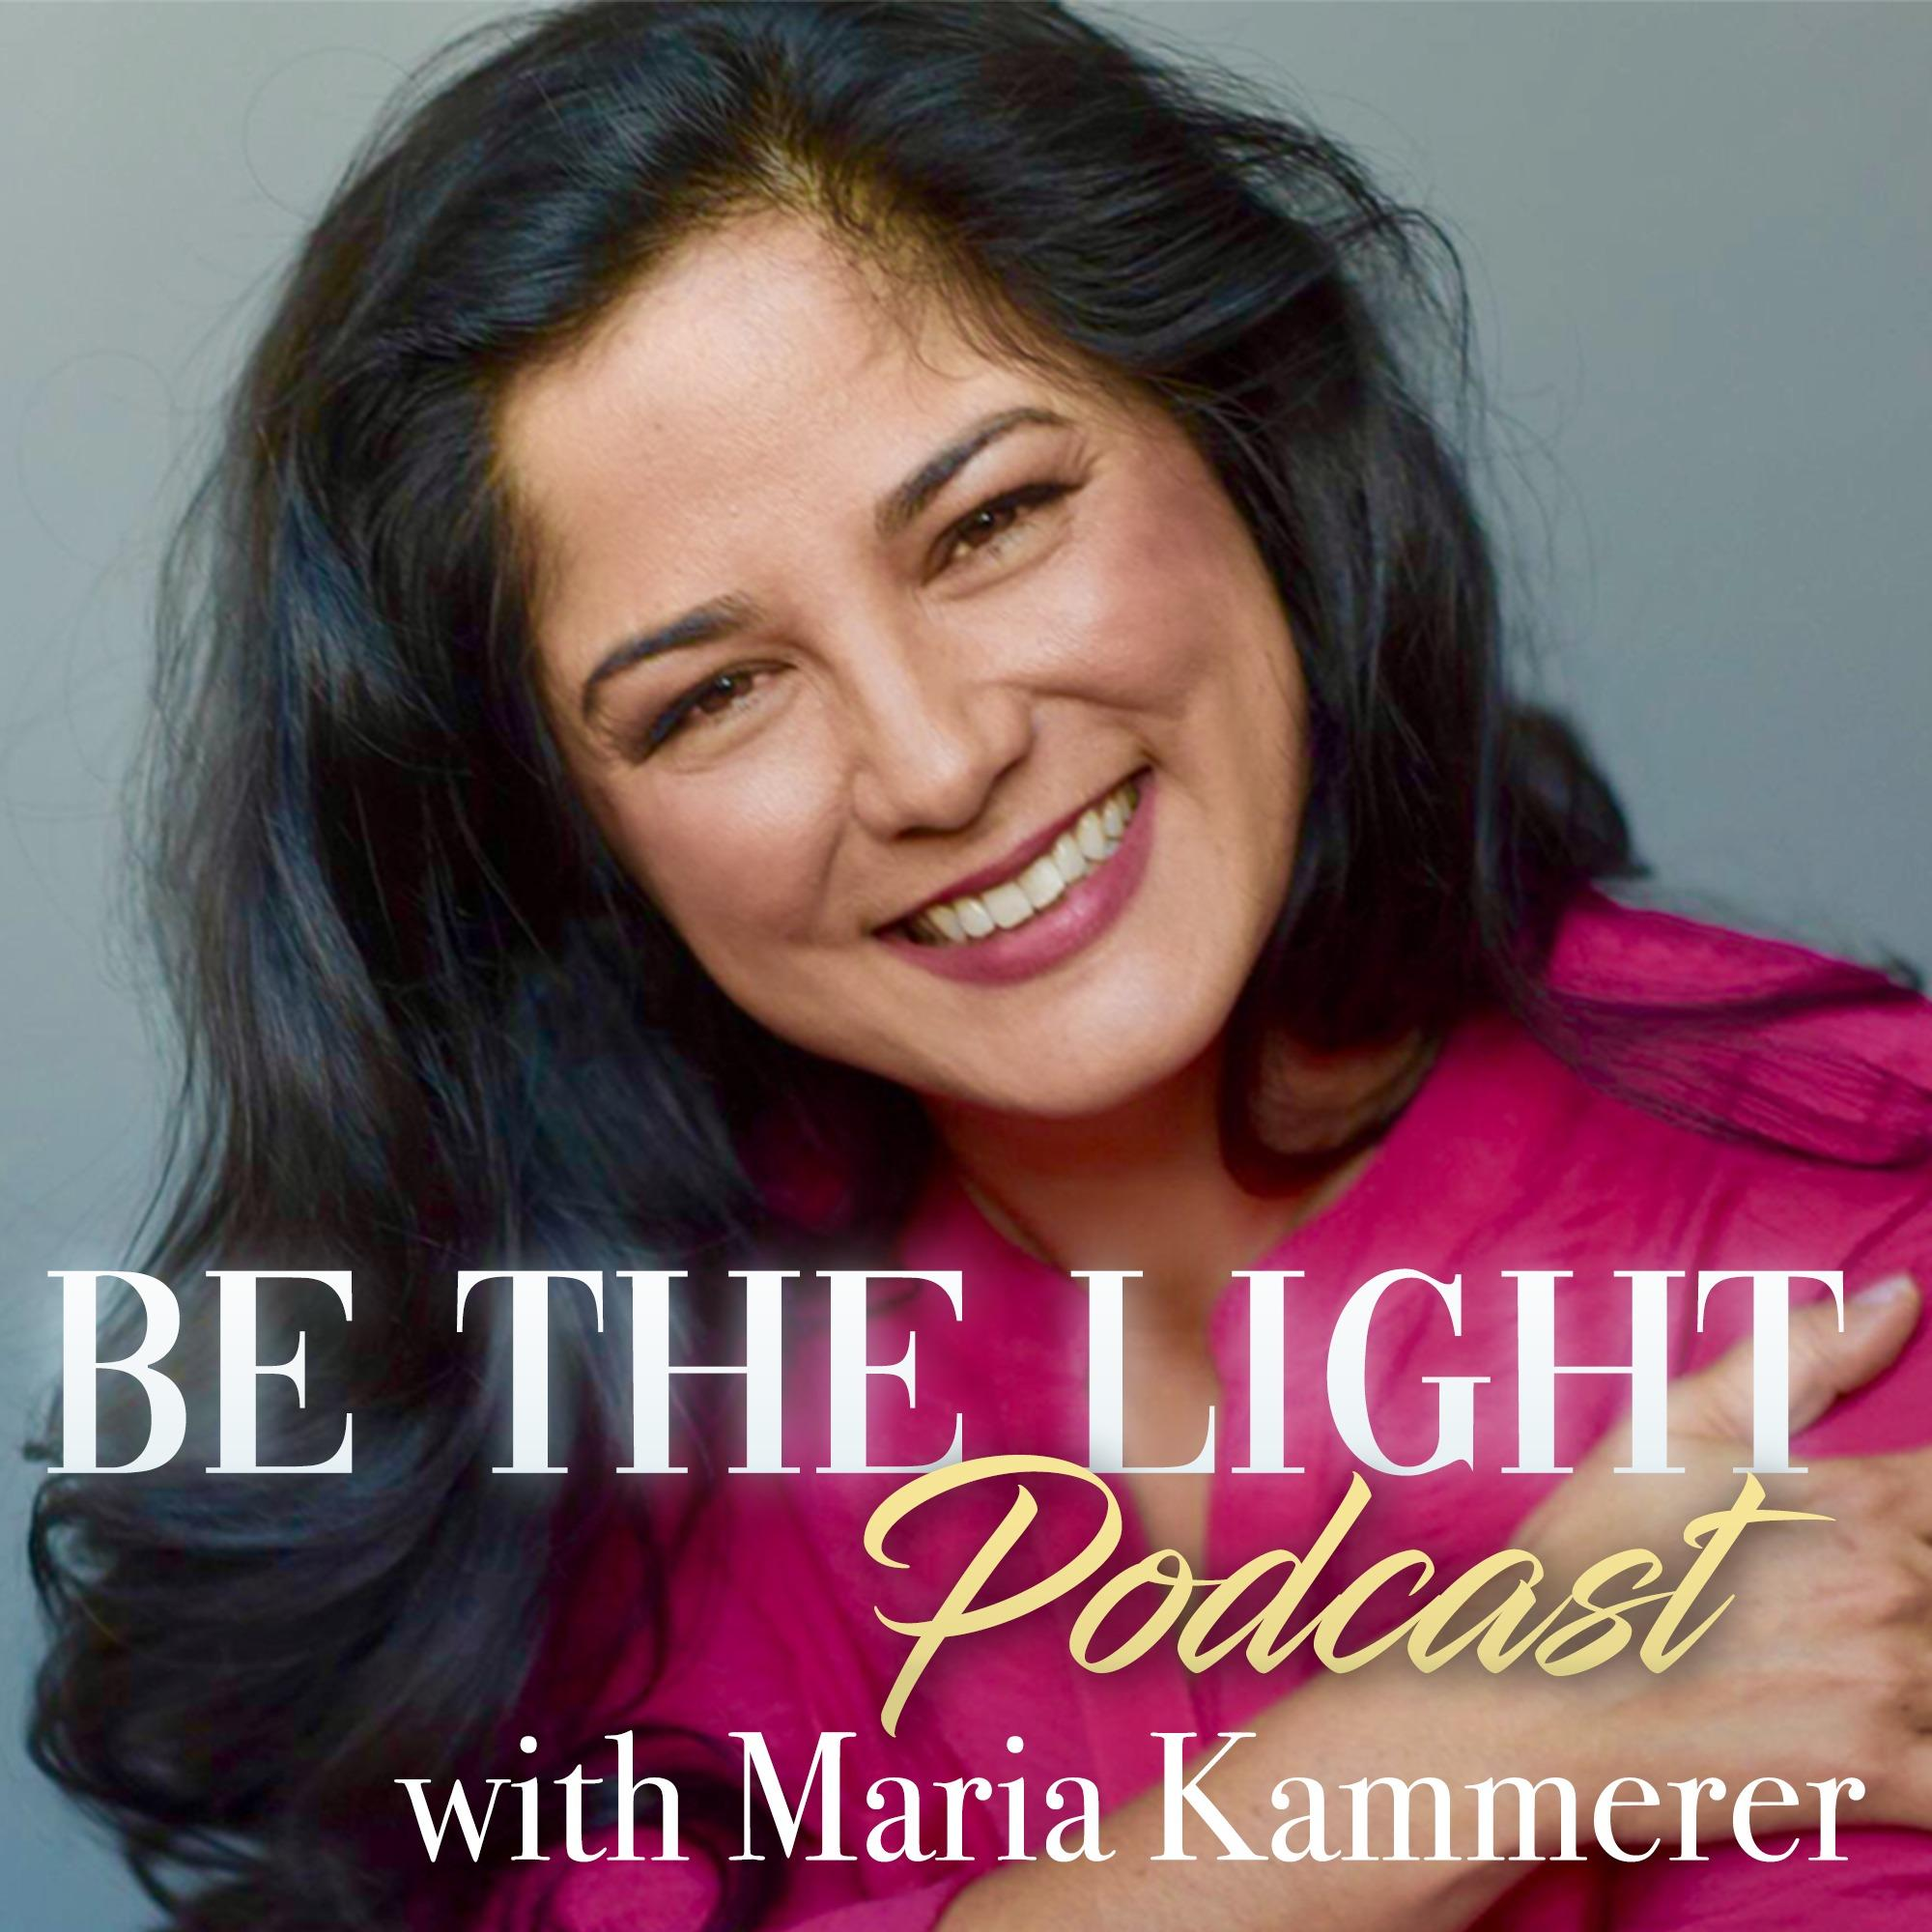 Be the Light Podcast with, Maria Kammerer